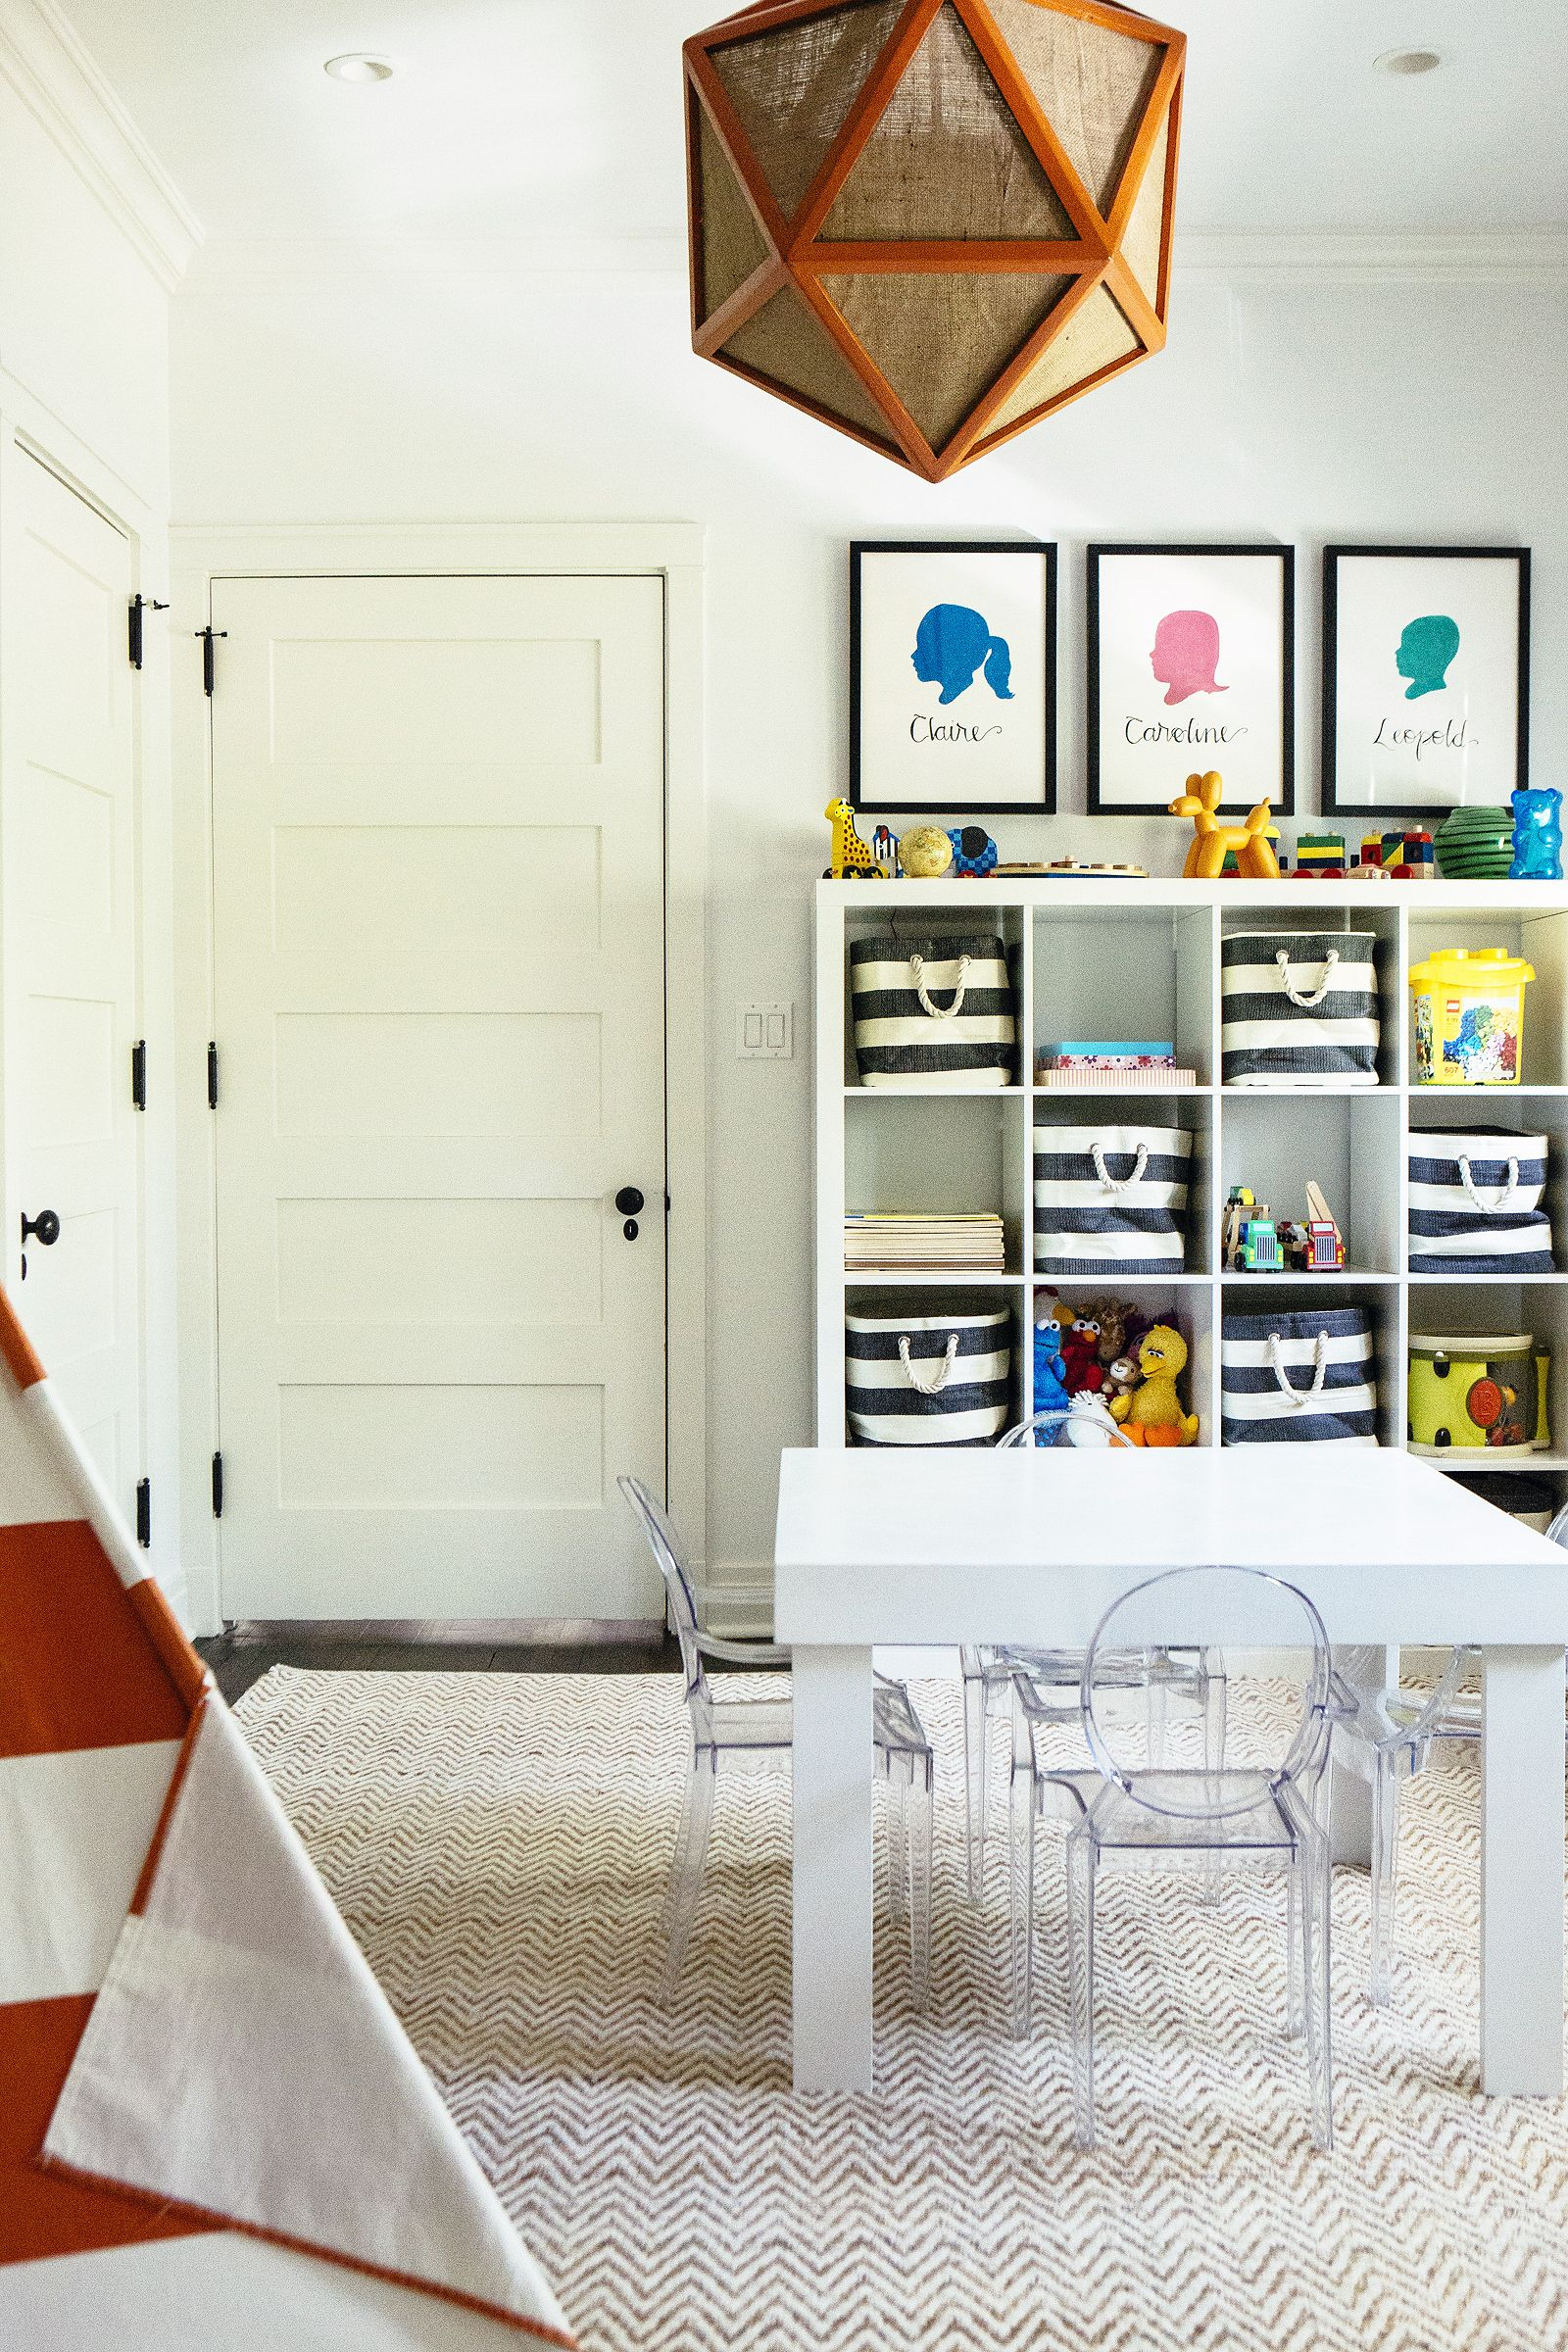 Salle De Jeux Ikea Luxe Photos Ikea 4x4 Bookshelf with Striped Bins In A Playroom by Alexandra